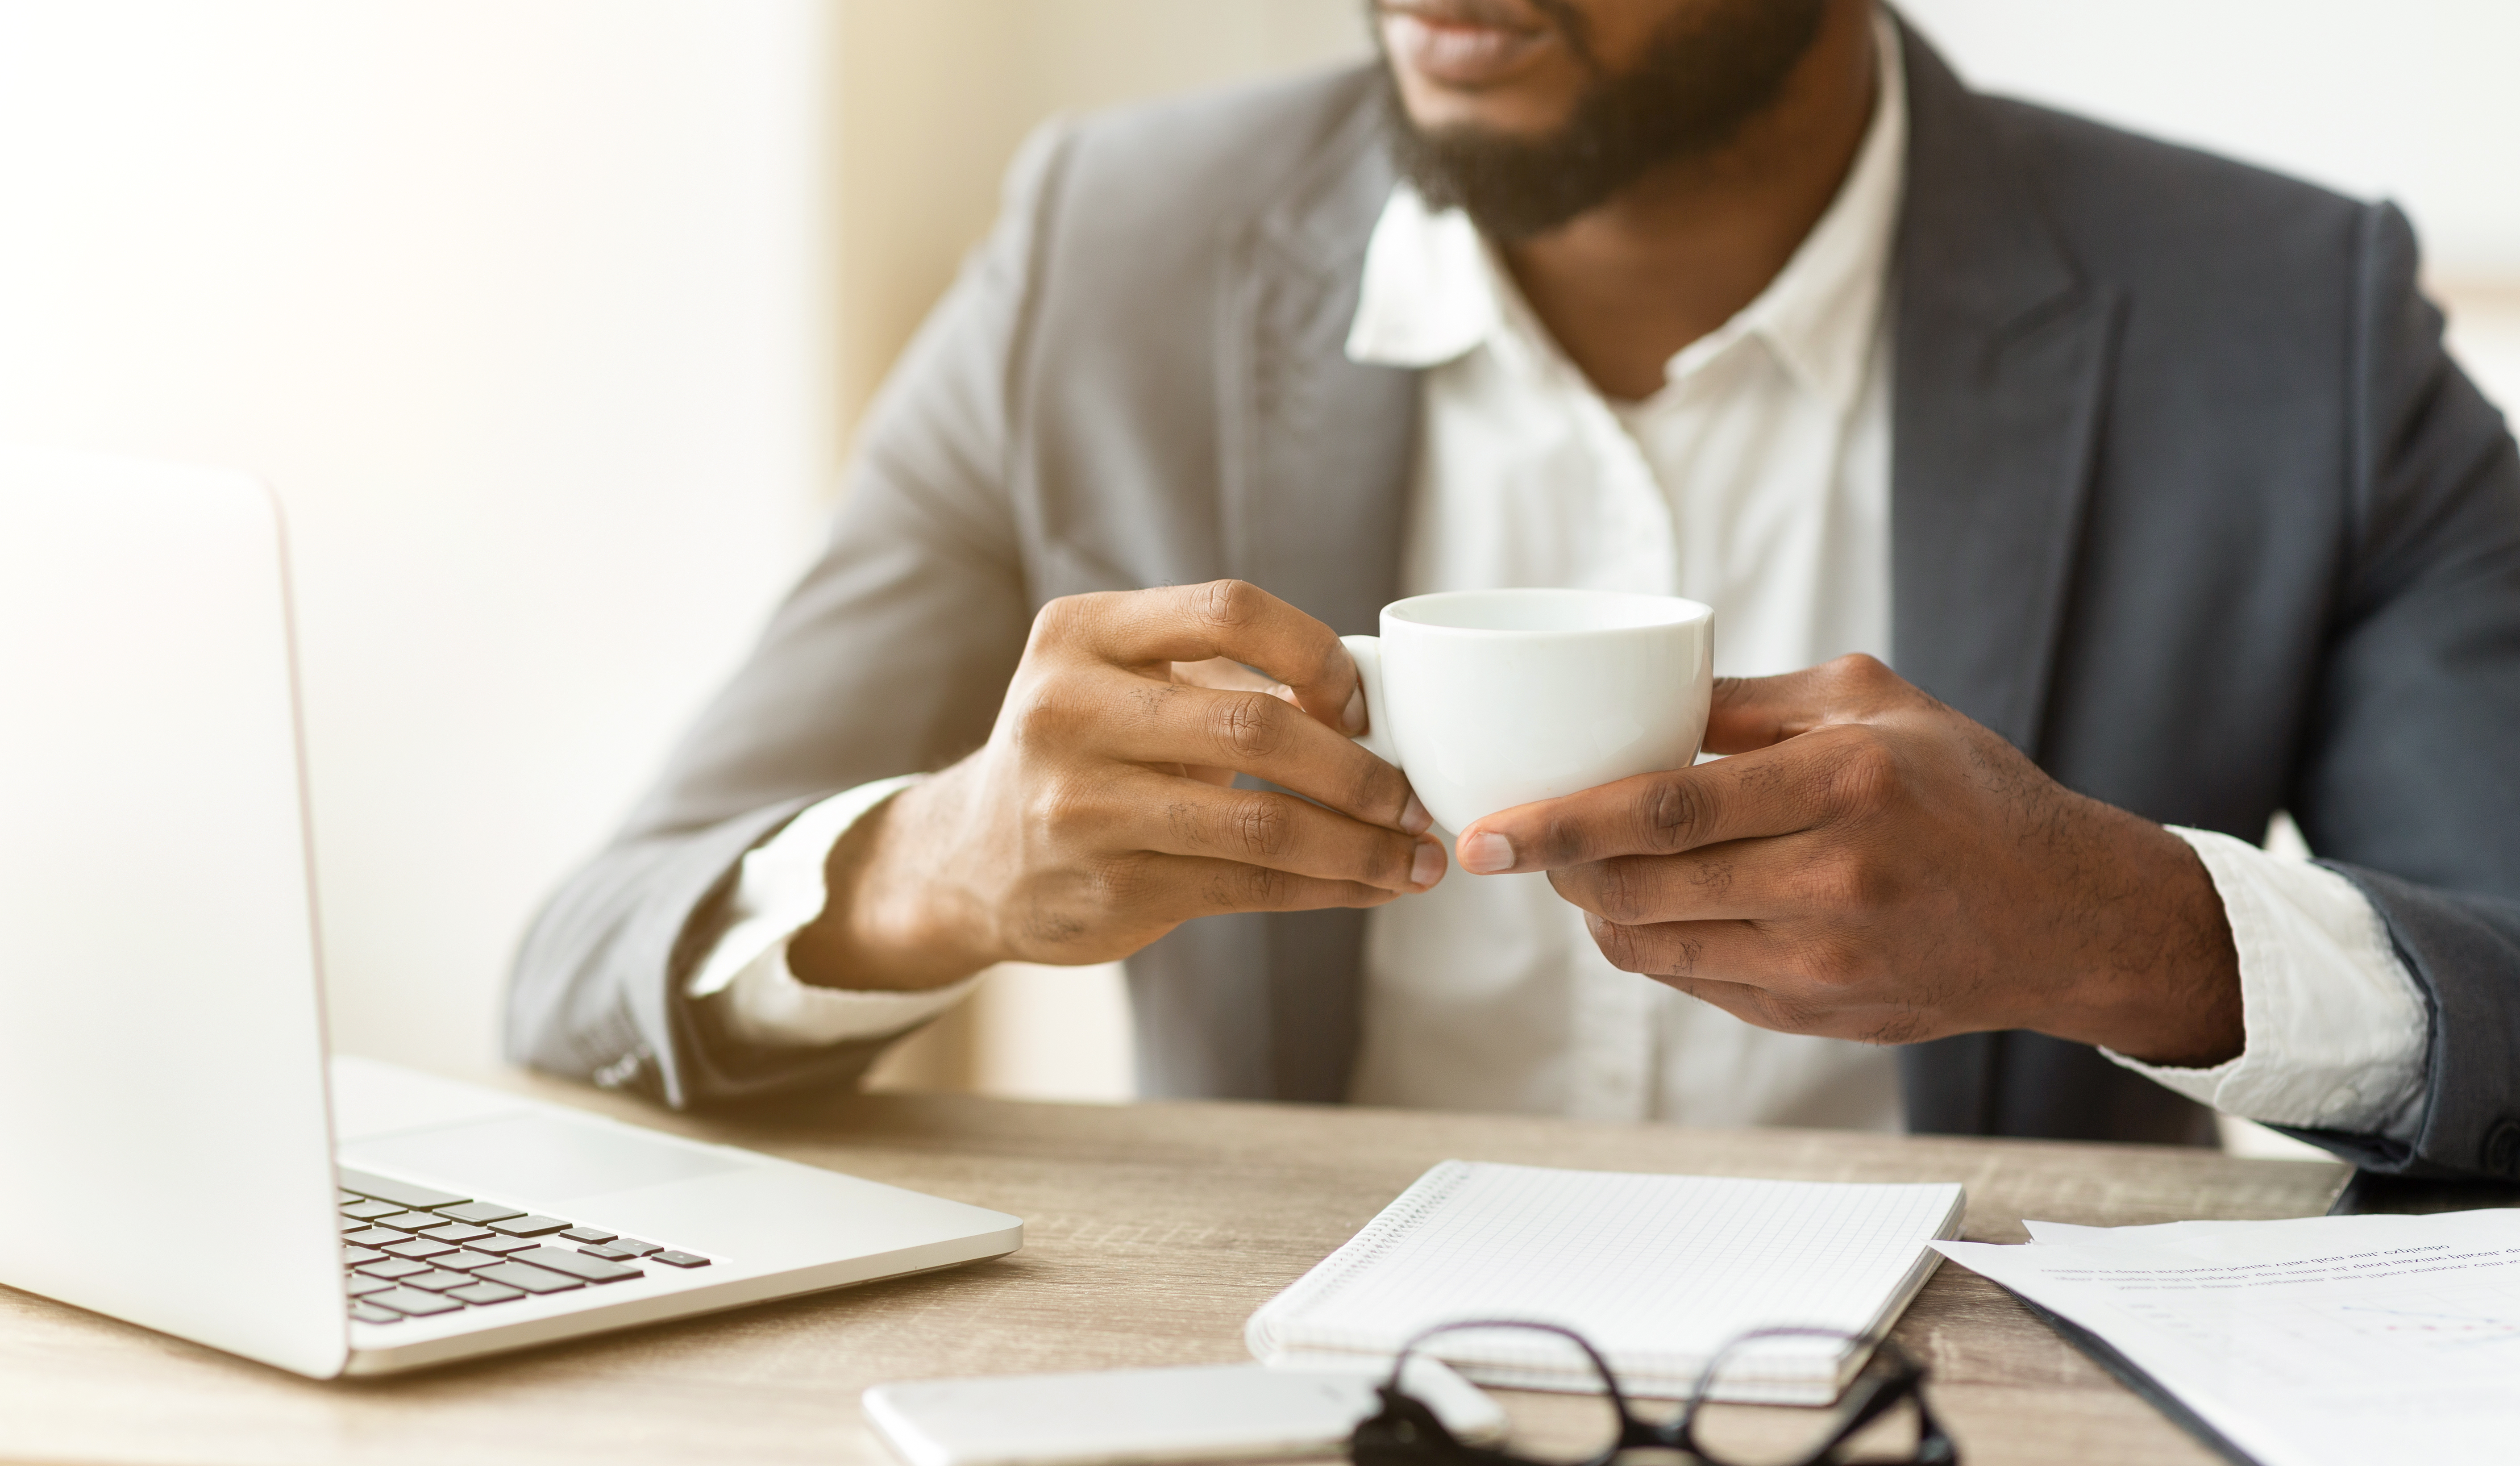 businessman drinking coffee at workplace, thinking about new project.